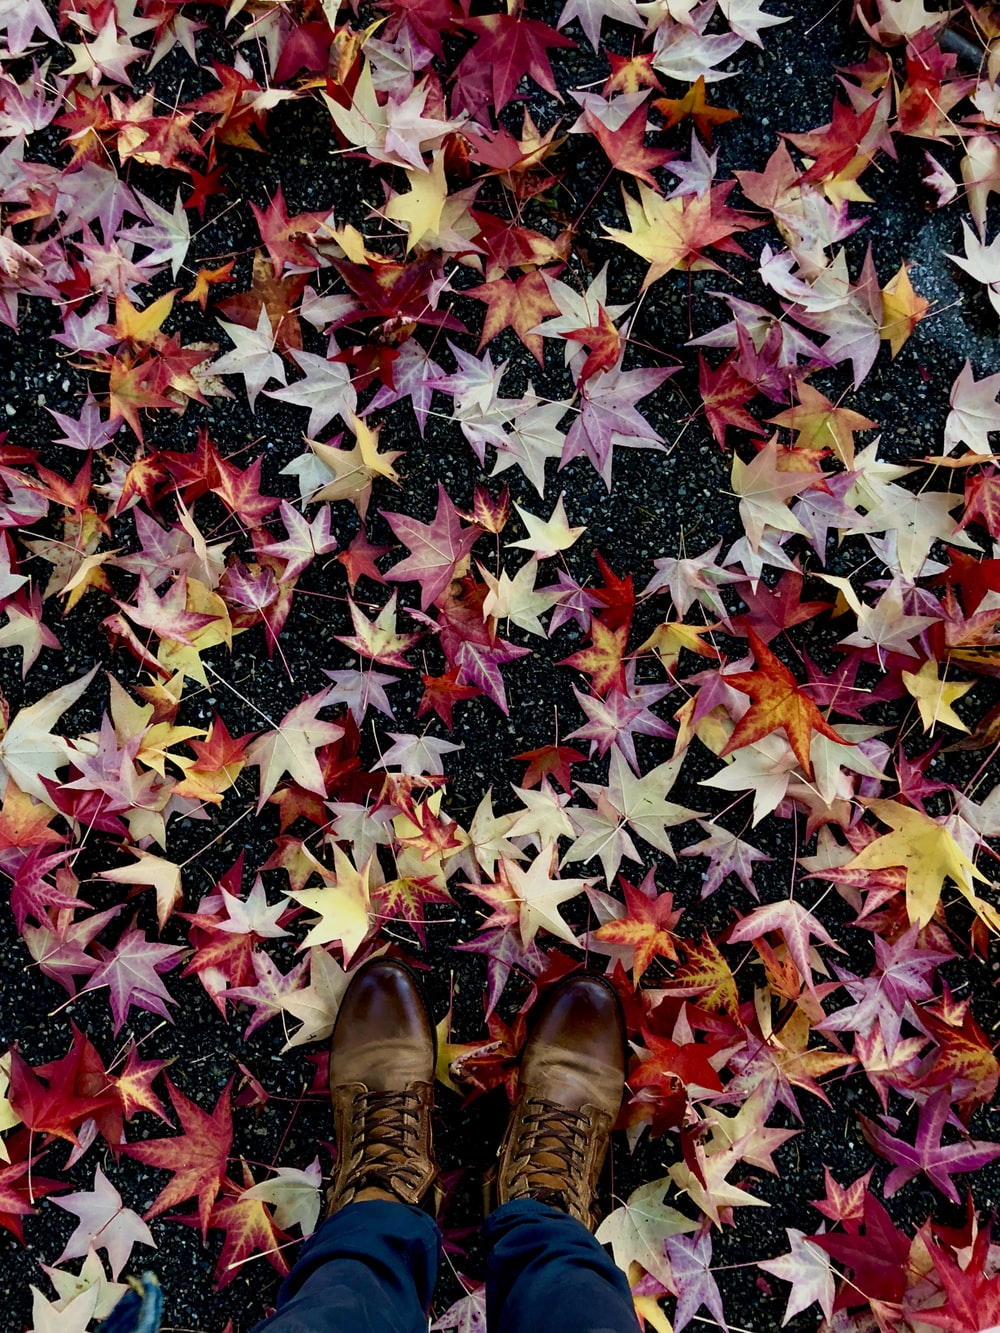 red, pink, and brown colored maple leaves on concrete floor